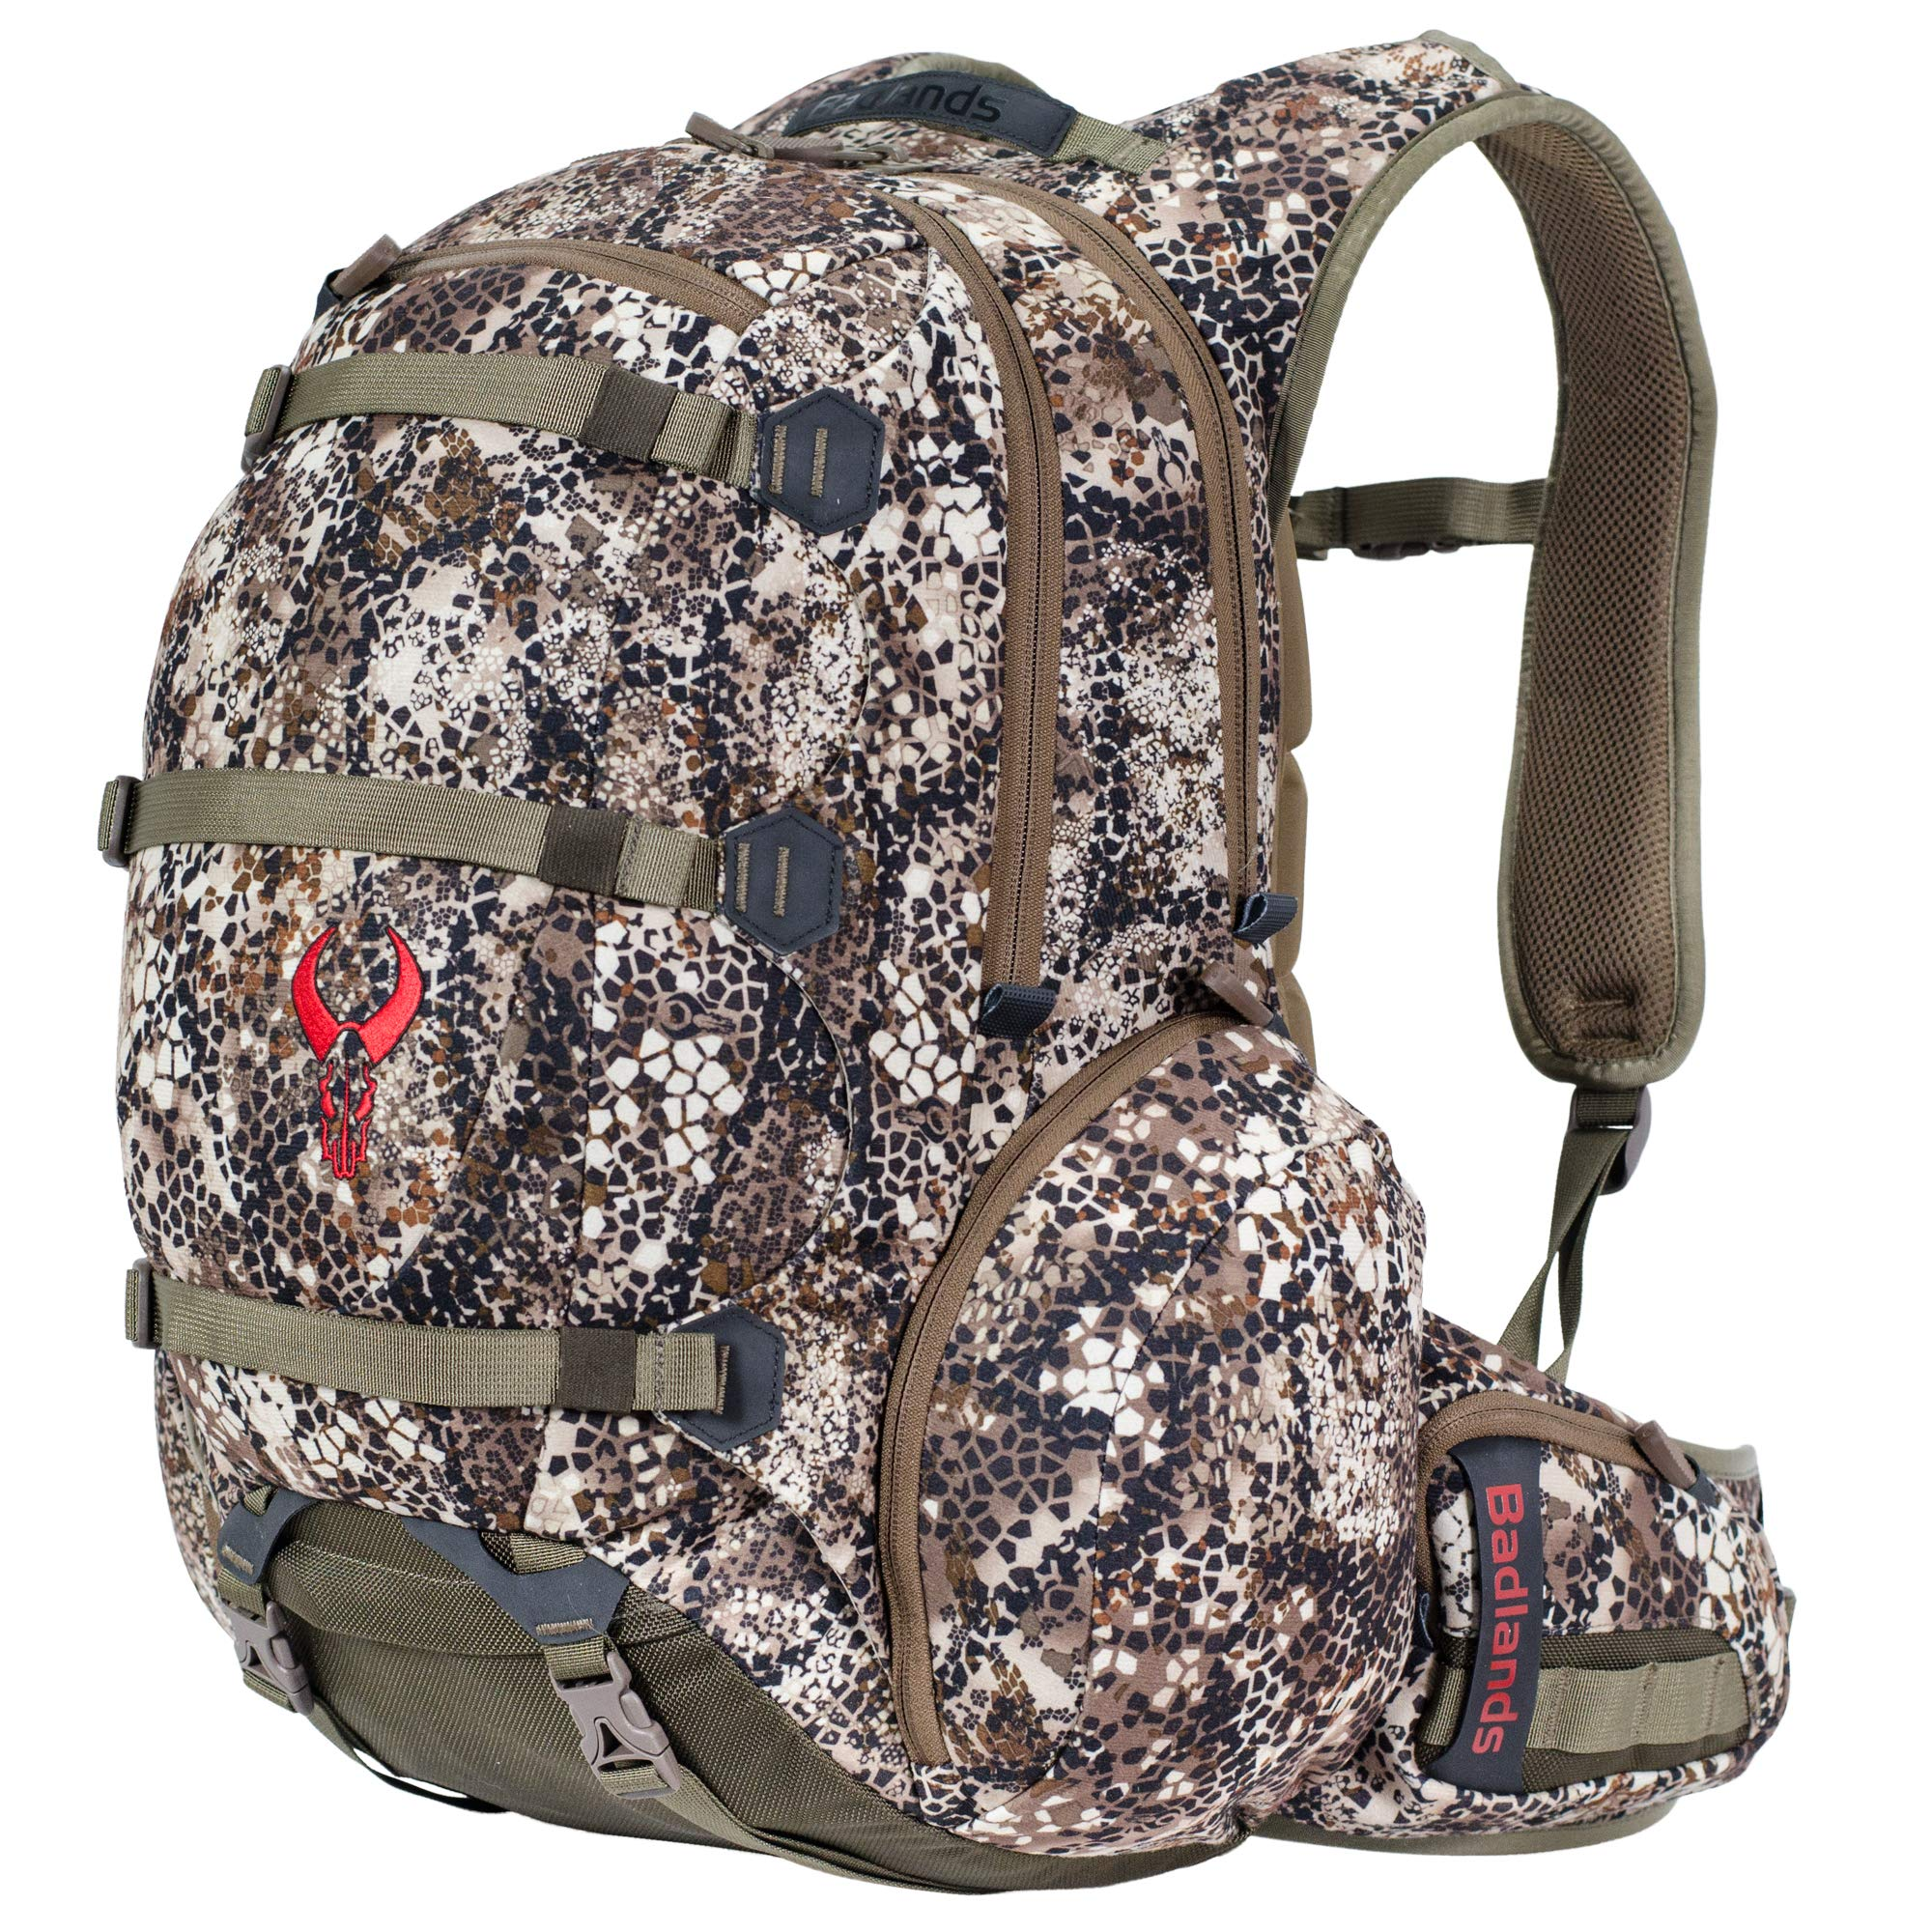 Badlands Superday Camouflage Hunting Backpack - Bow, Rifle, and Pistol Compatible, Approach FX by Badlands (Image #1)